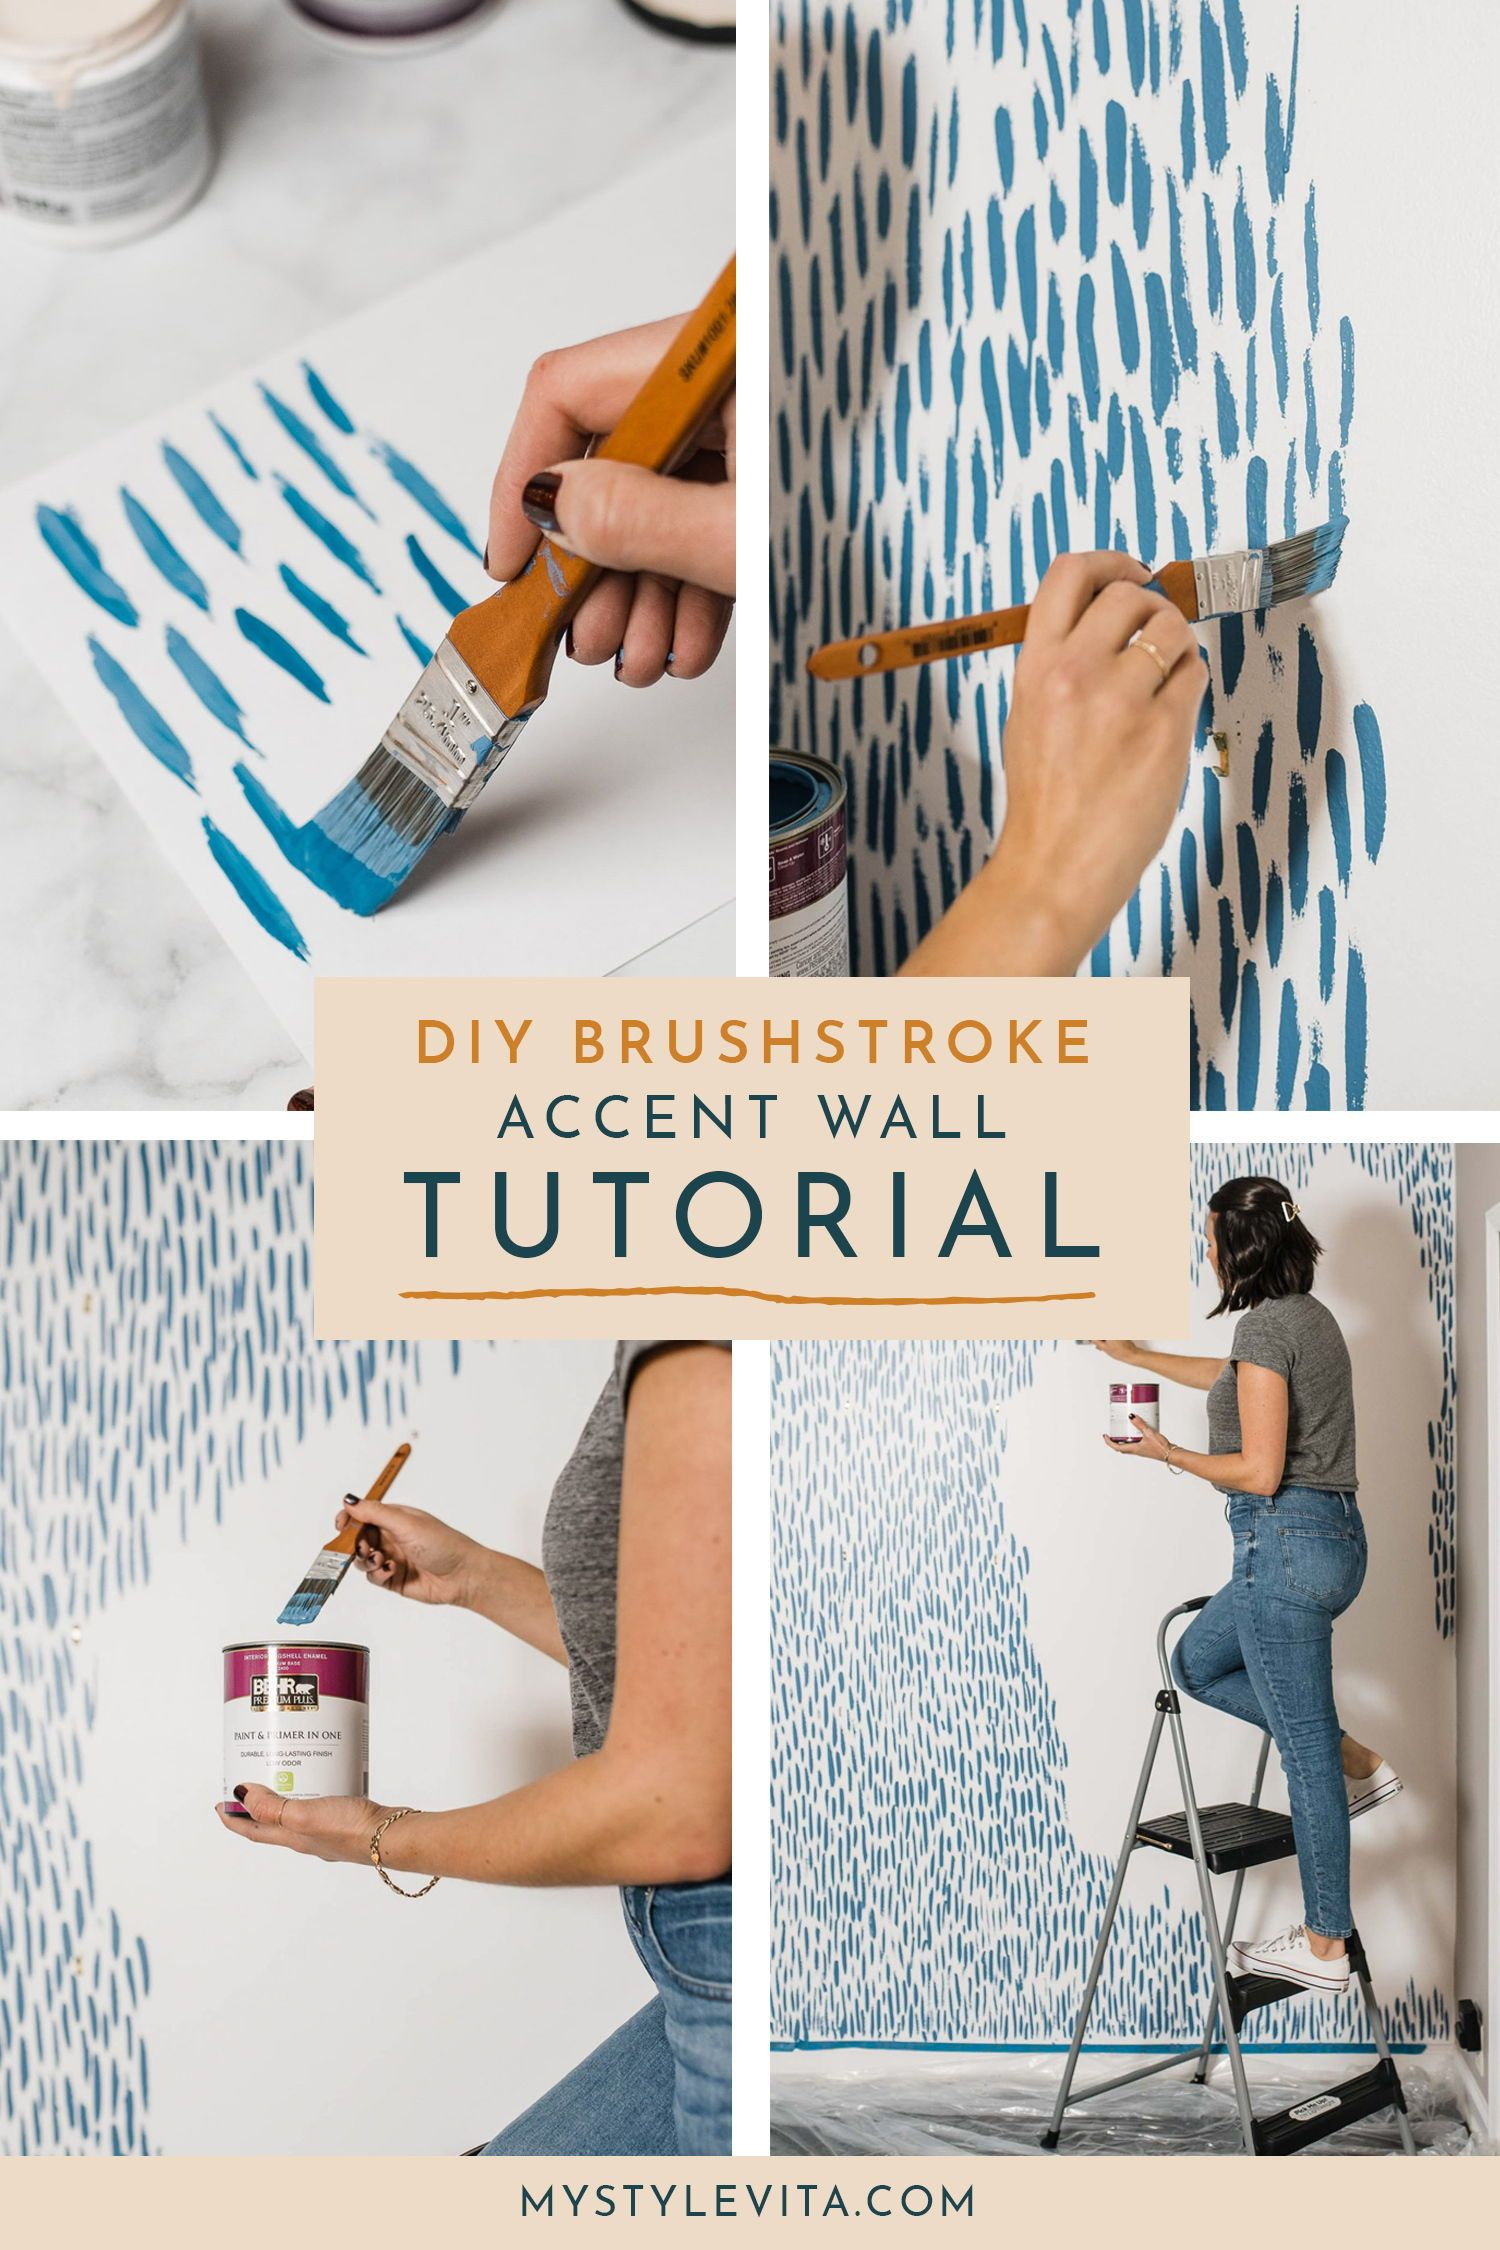 DIY Brushstroke Accent Wall Tutorial | My Style Vita #accentwall #homedecor #ideas #painted #DIY